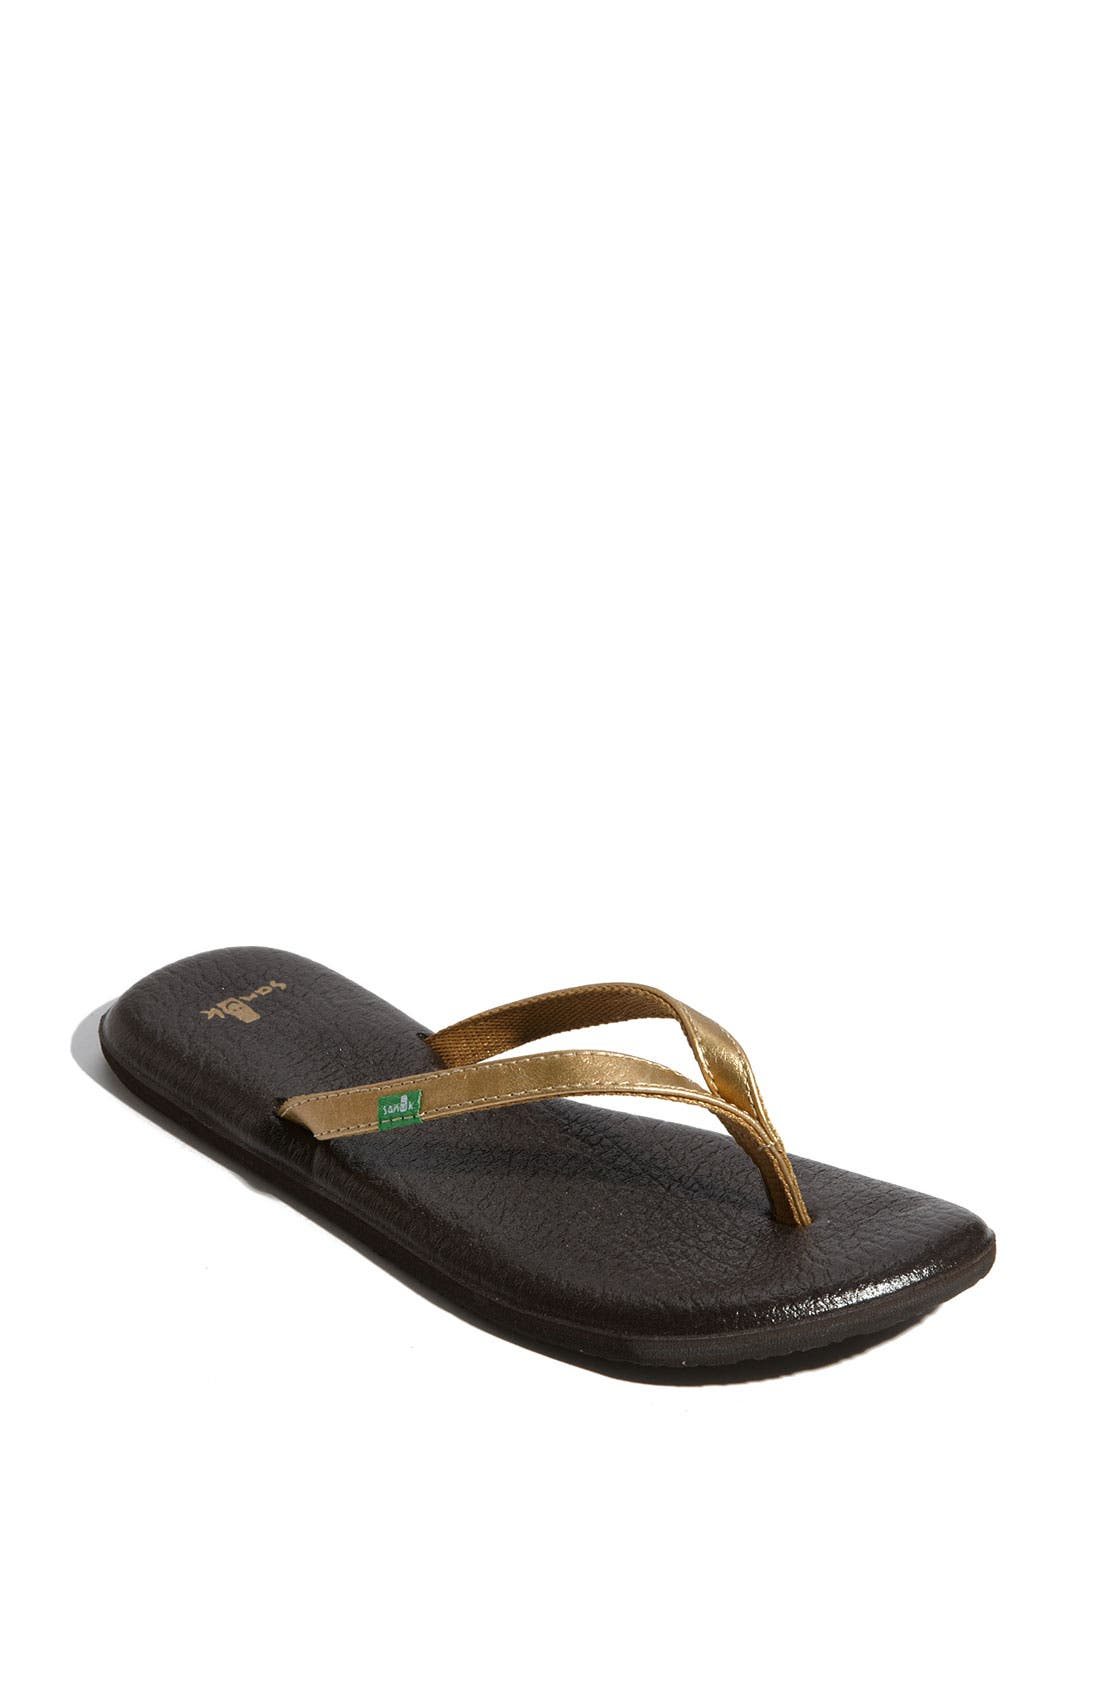 Alternate Image 1 Selected - Sanuk 'Yoga Spree' Flip Flop (Women)